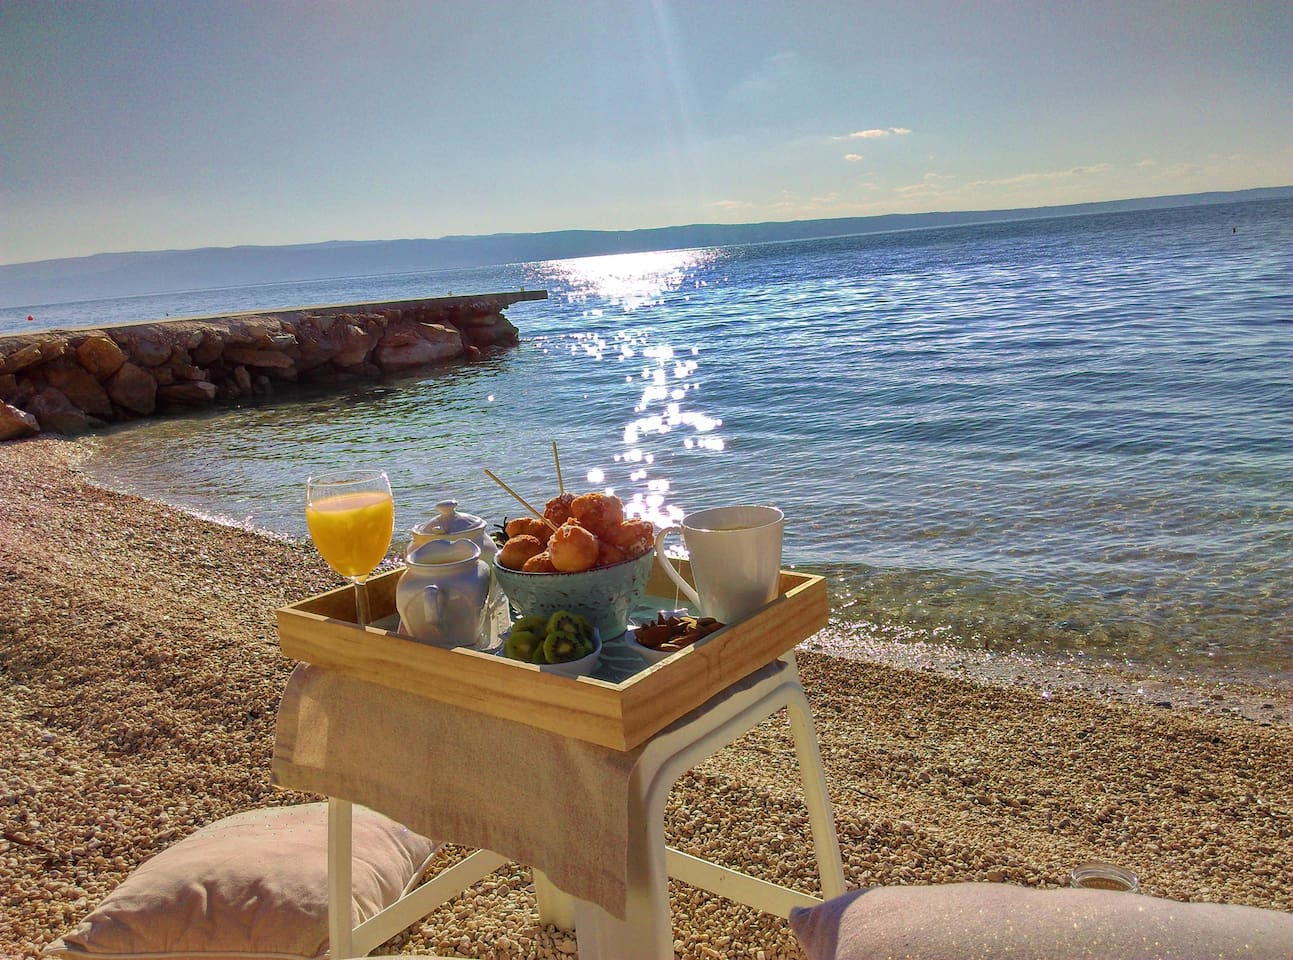 We recomend breakfast on the beach, just in front of apartment